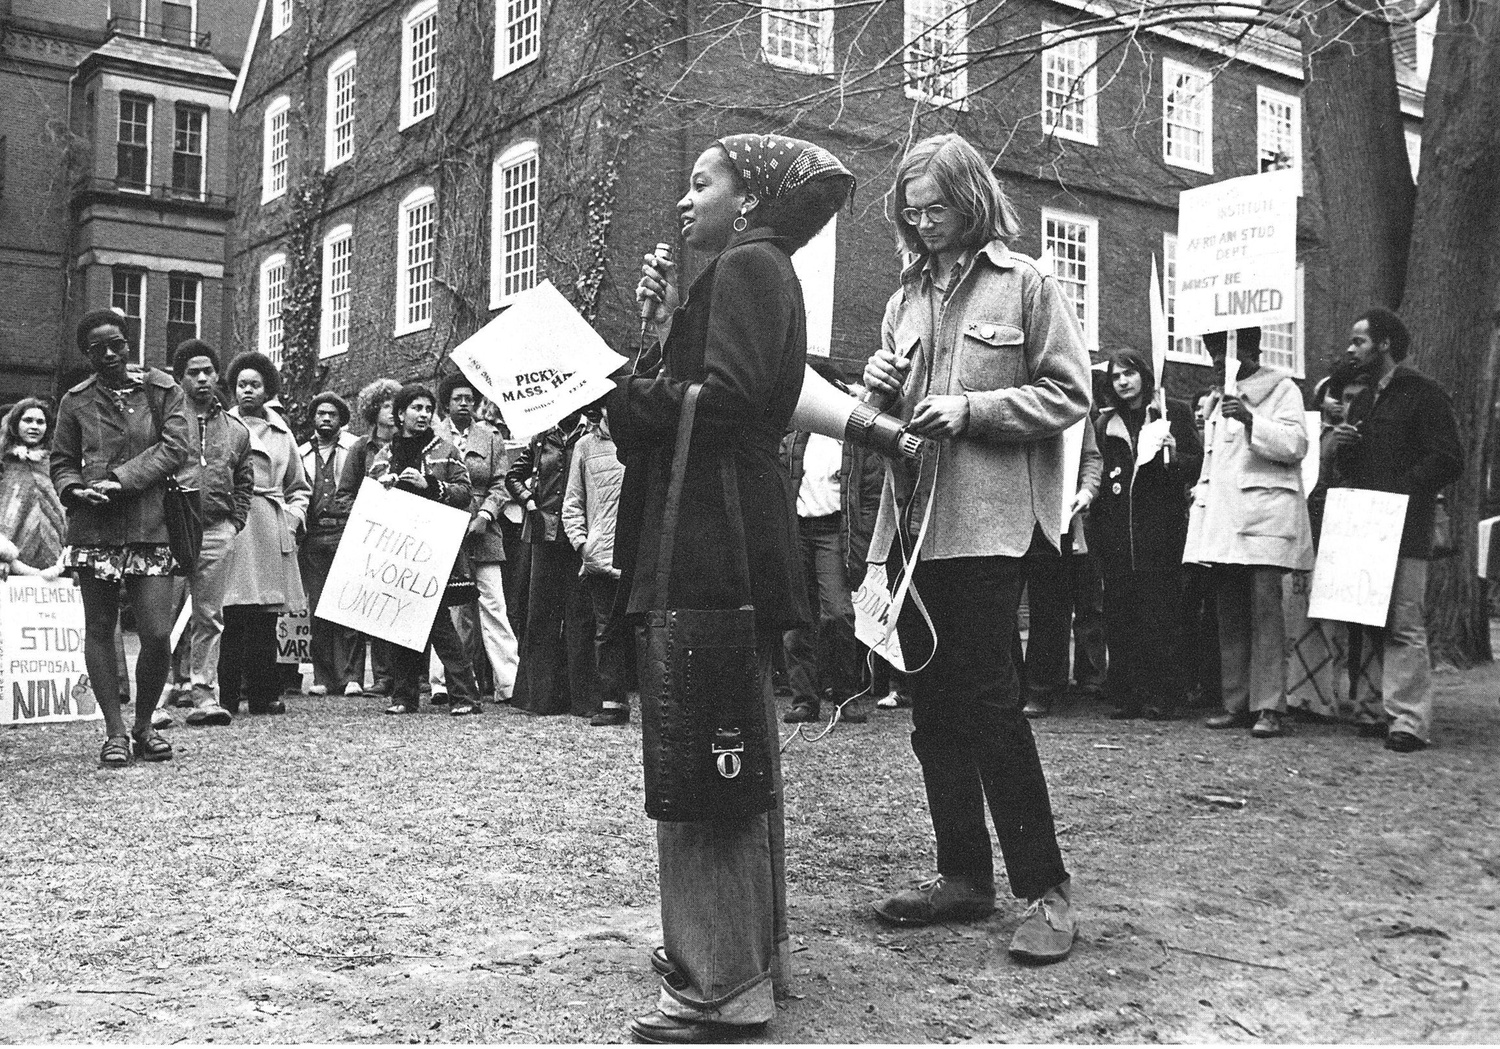 Students protest in front of Massachusetts Hall in 1975.